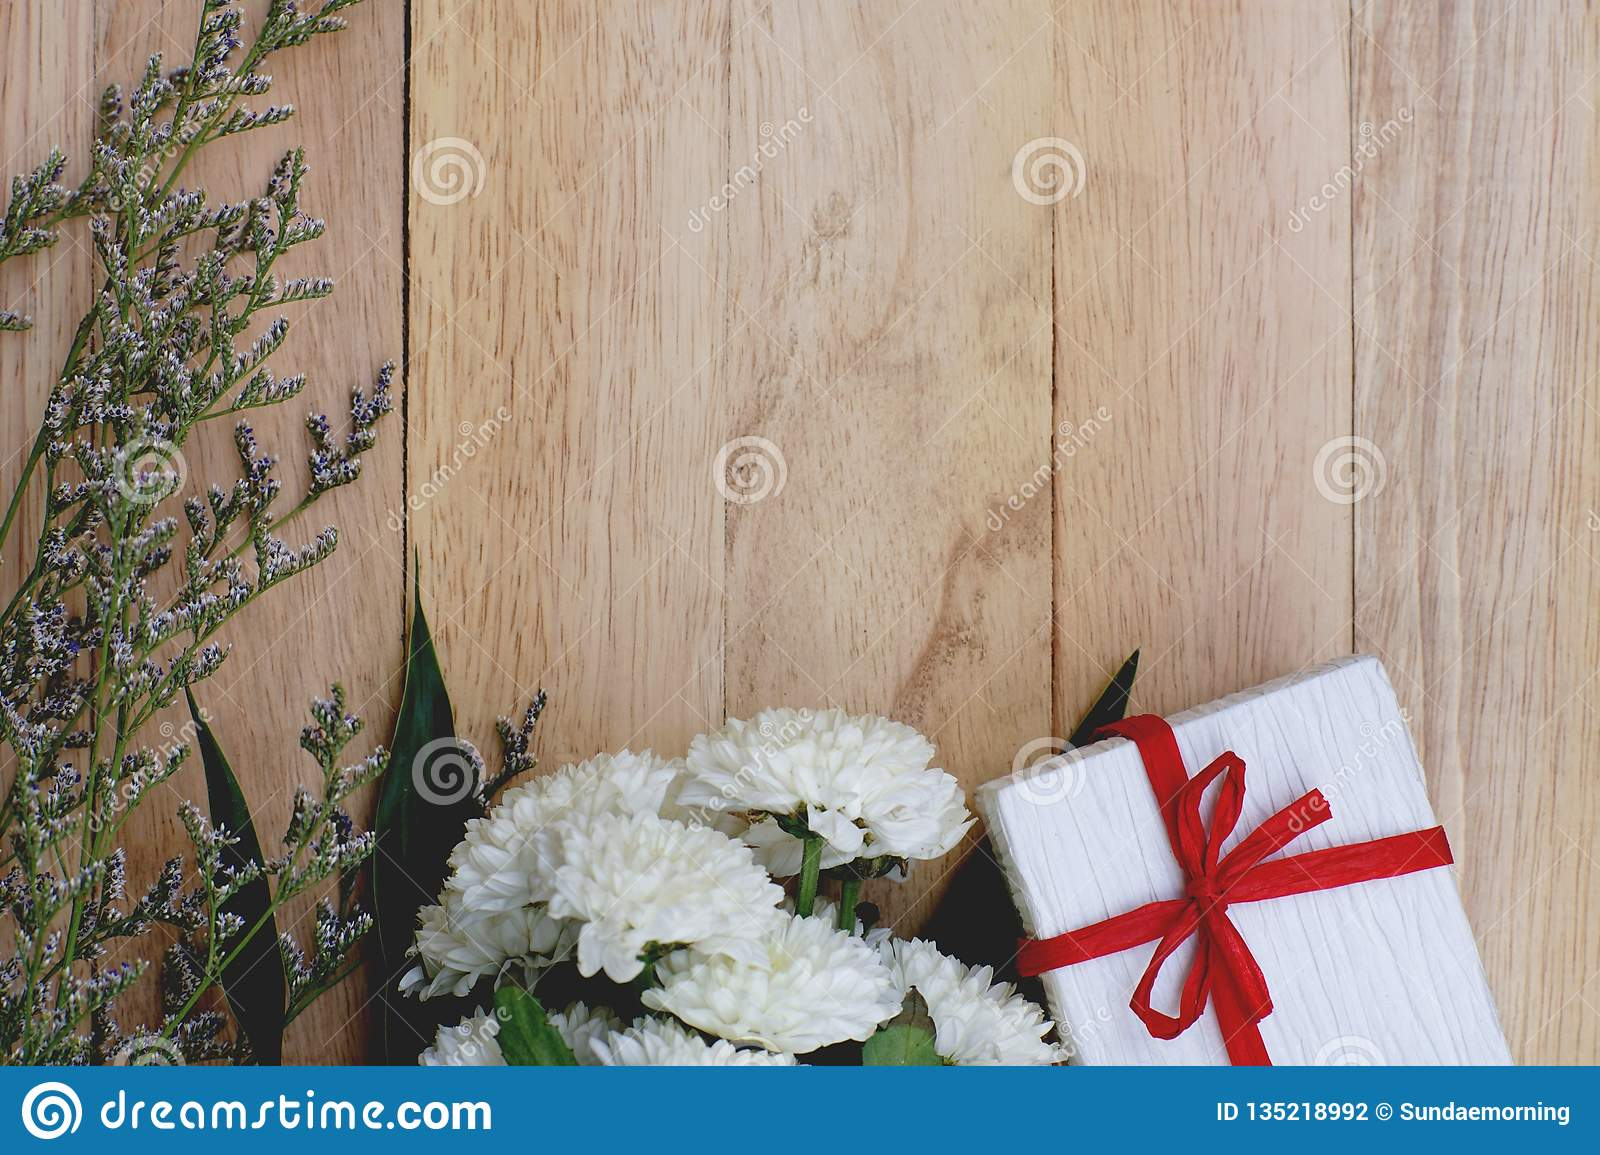 Eco friendly brown paper wrapped gift box present decorated with rose and other flowers on wooden background, valentine ornamental